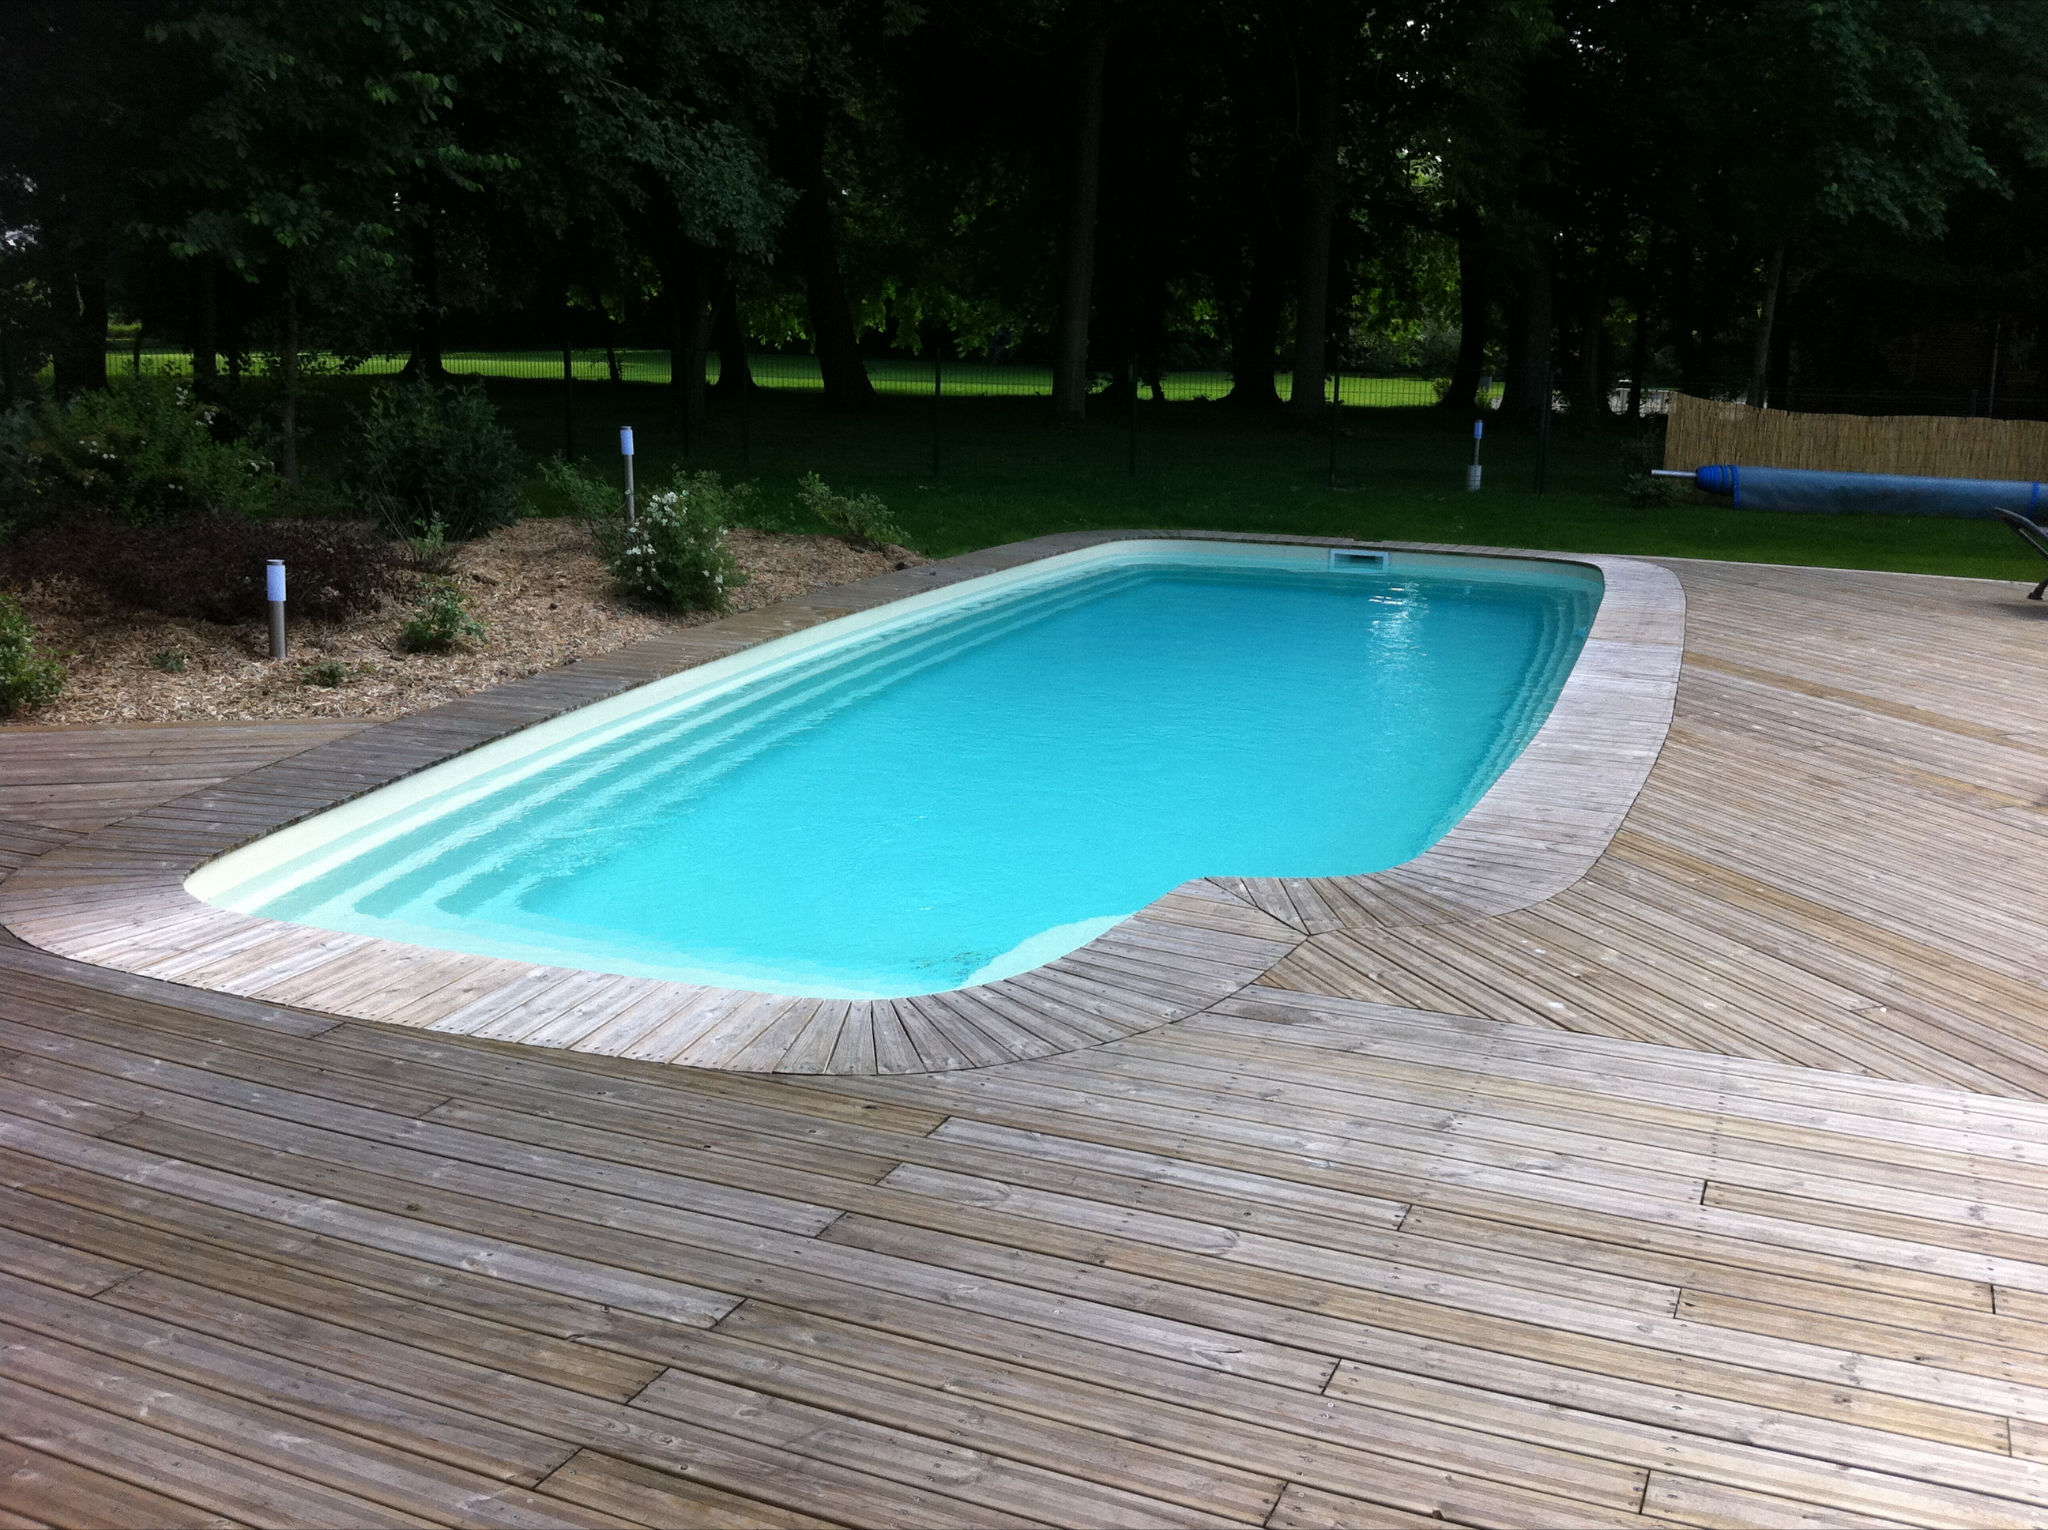 Piscine coque indiana 3 picardie piscine for Promotion de piscine